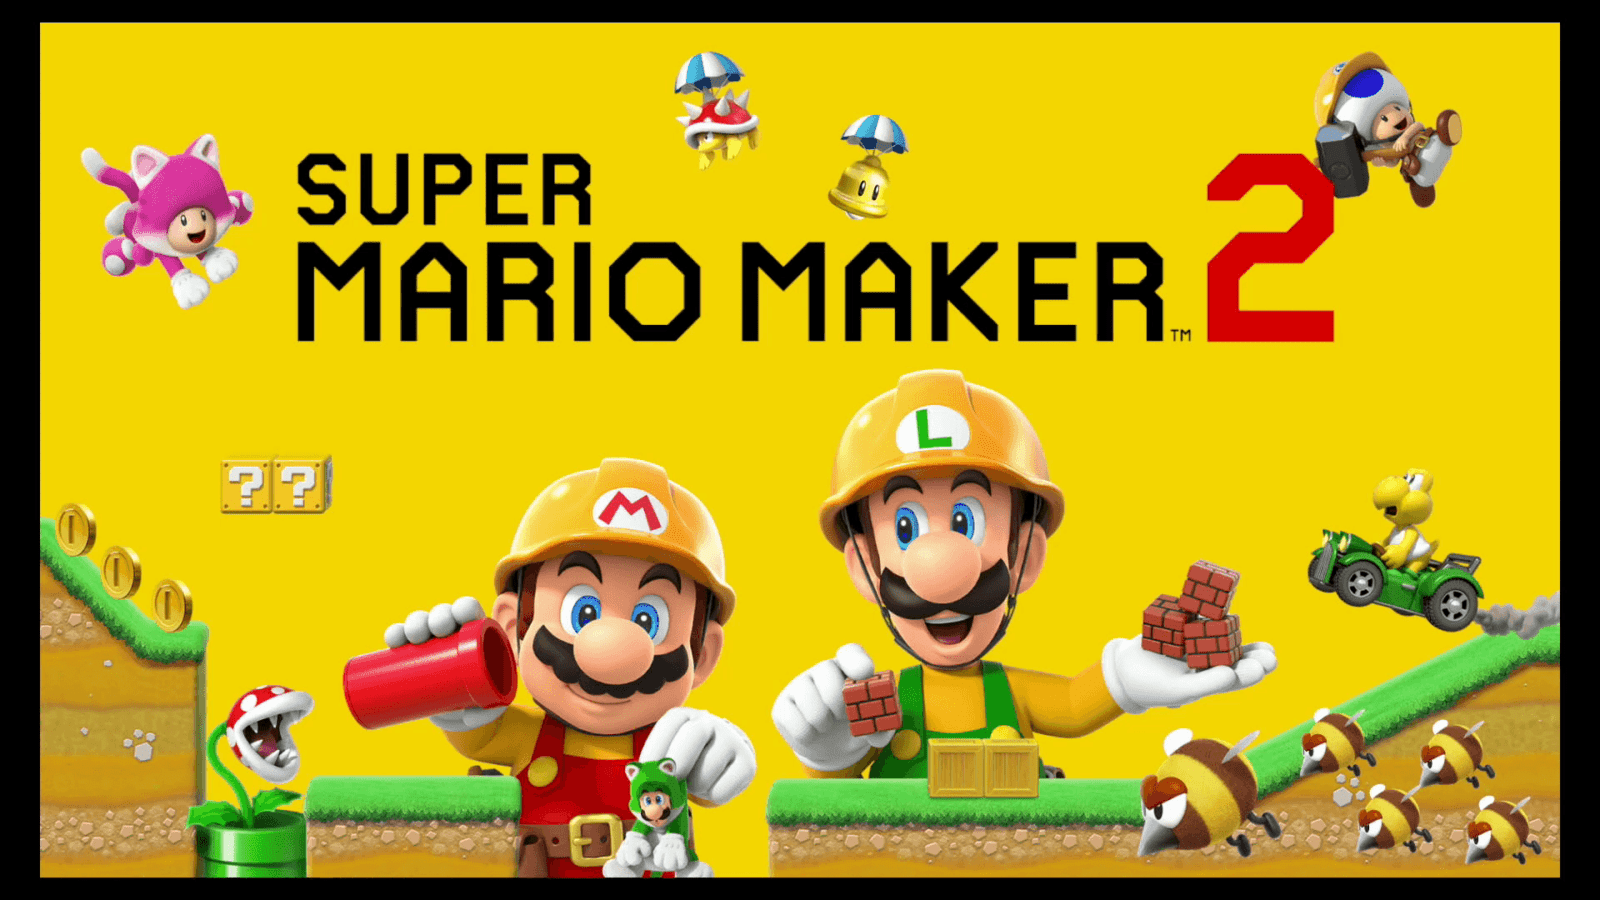 Super Mario Maker 2 Update Version 1.1.0 Full Patch Notes